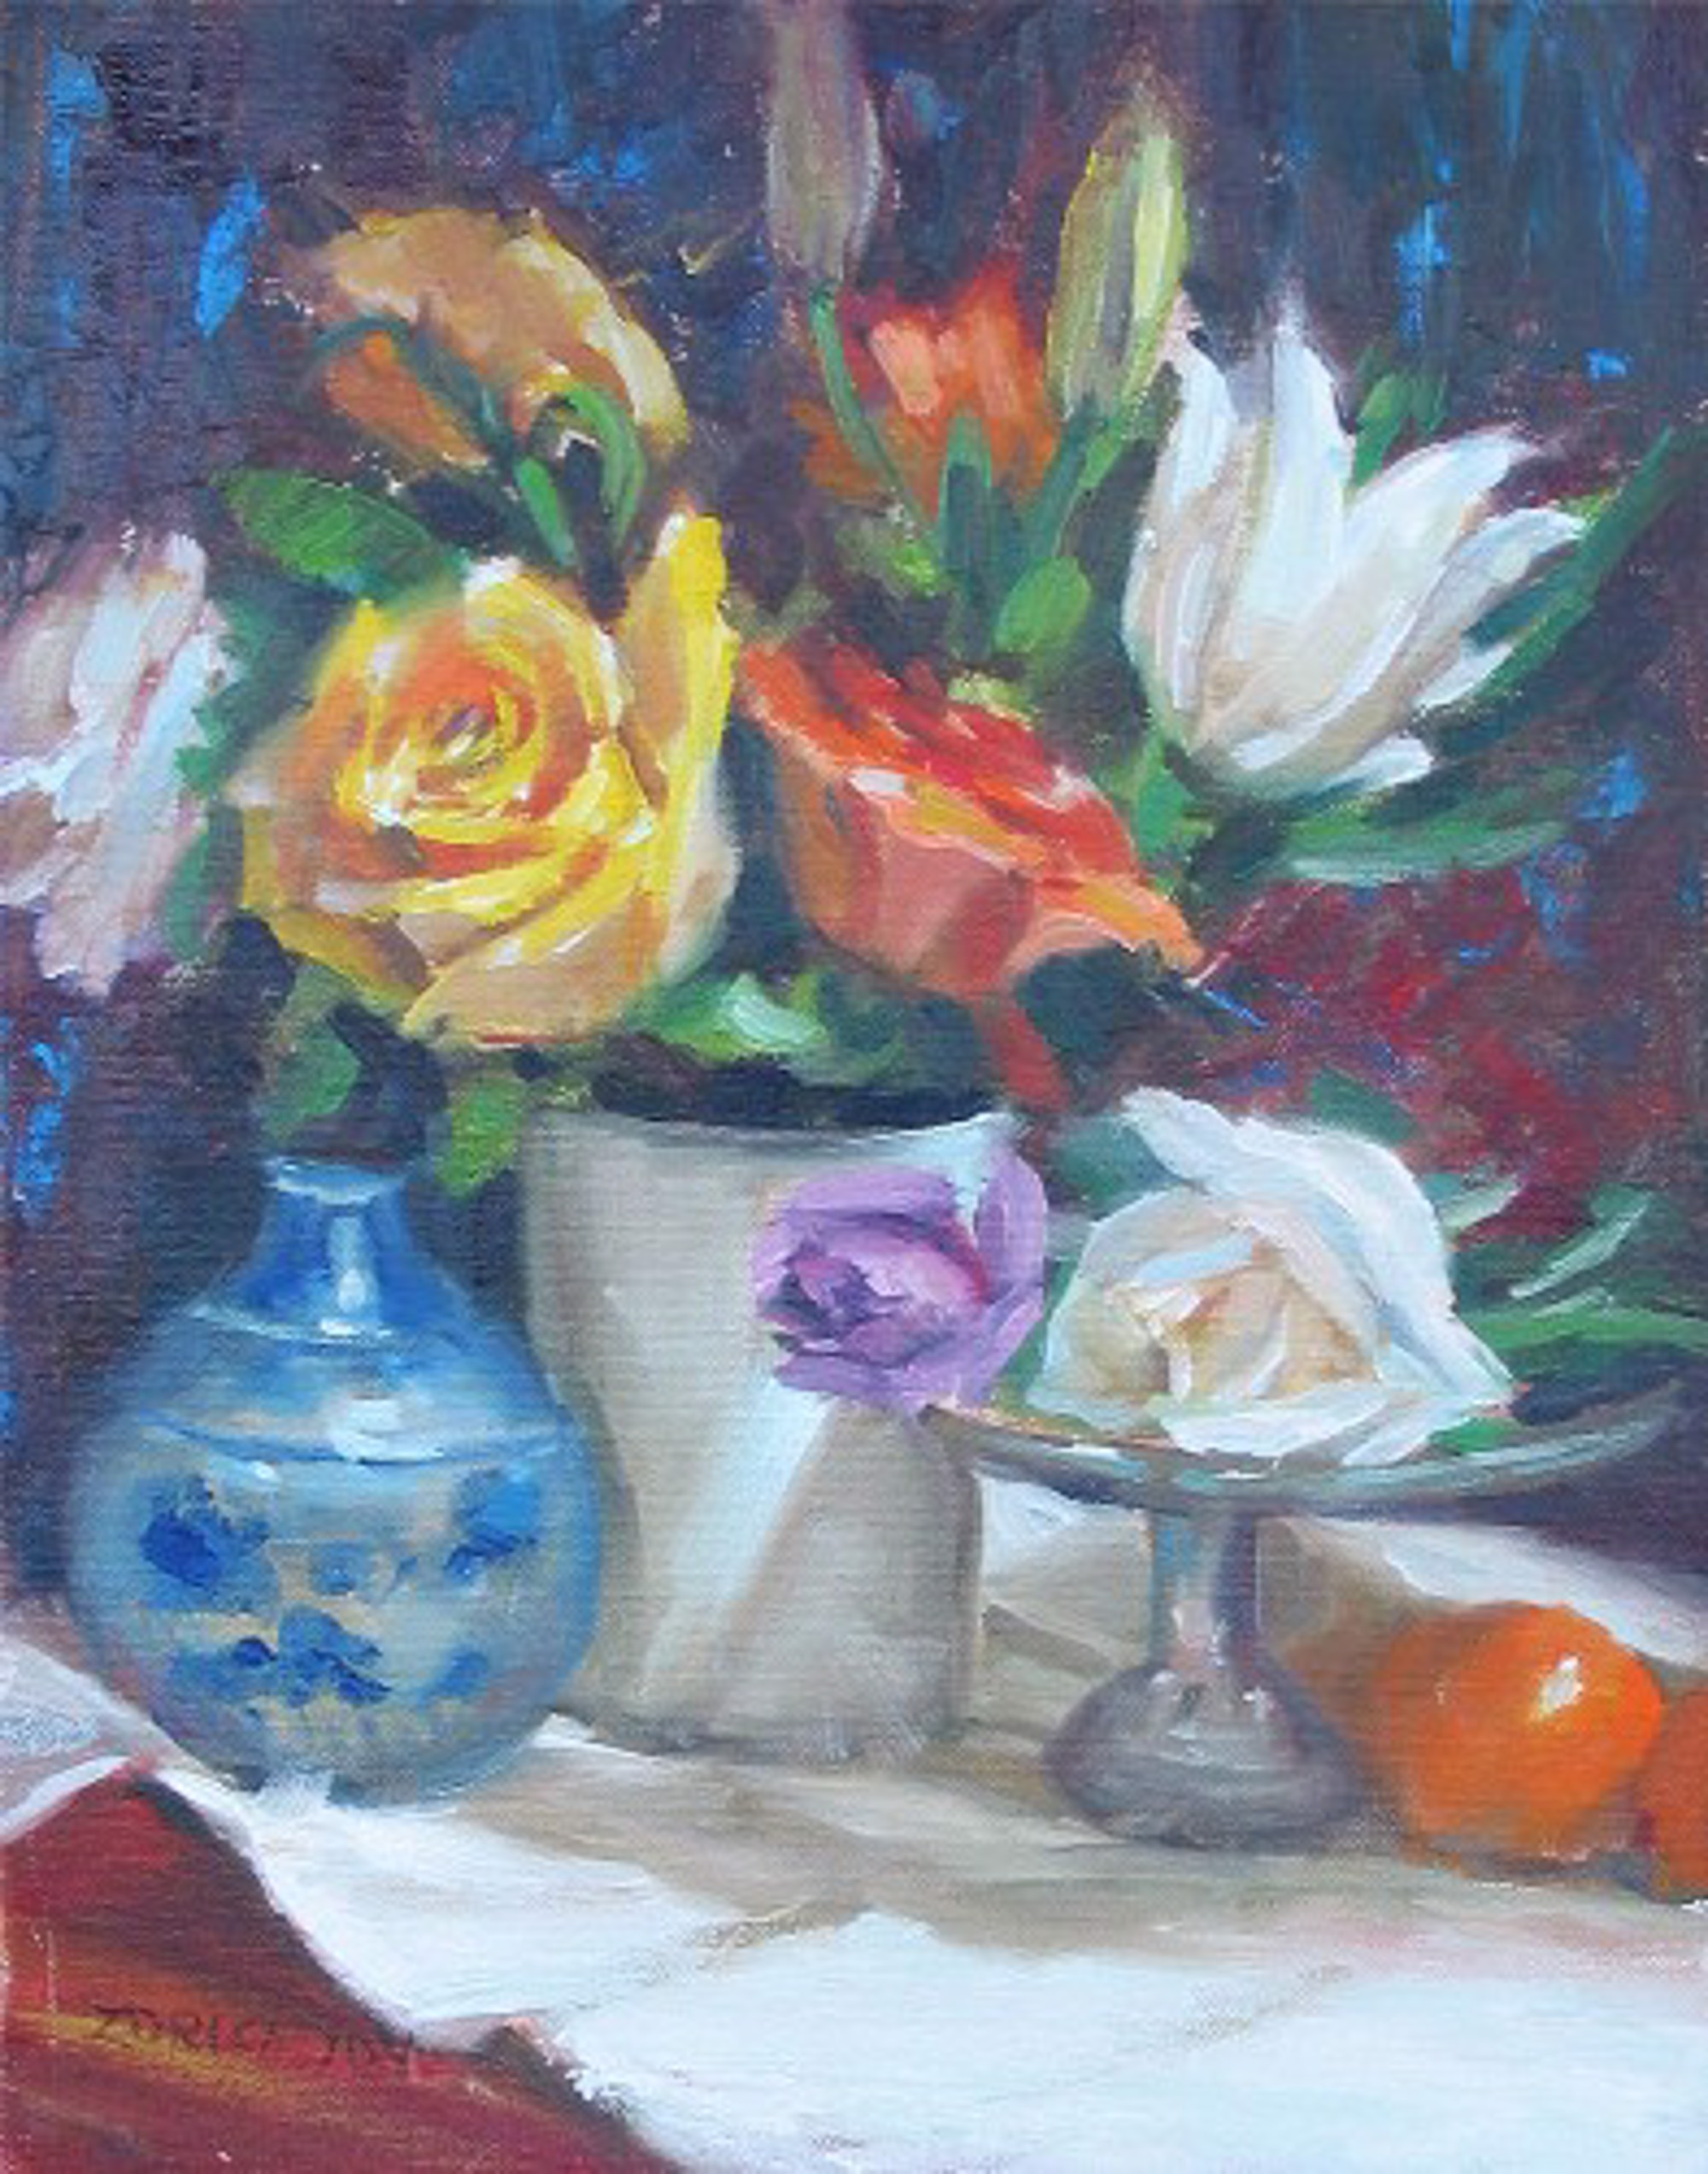 FLOWERS AND ORANGES by JOY